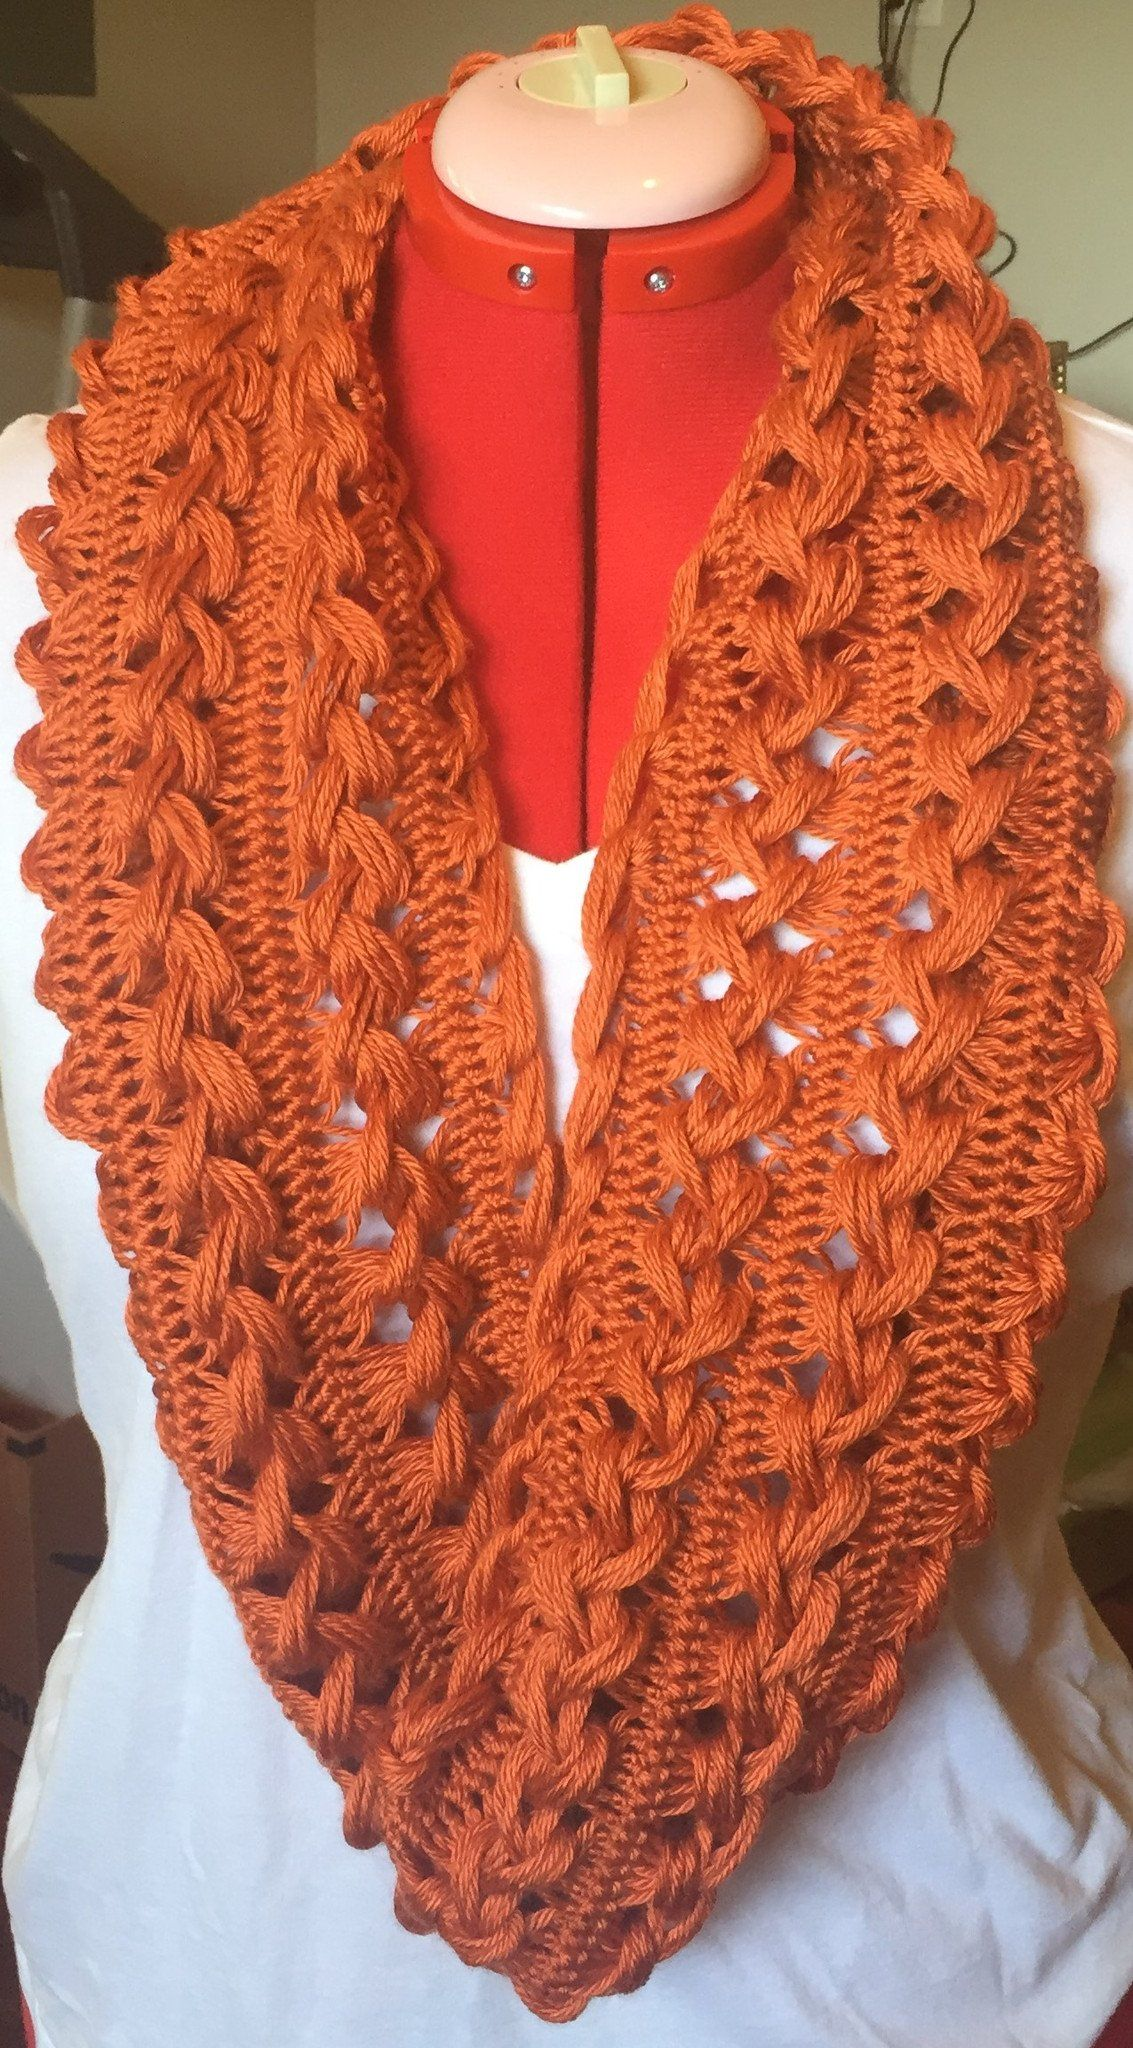 Handmade hairpin lace infinity scarf adult size orange handmade hairpin lace infinity scarf adult size orange bankloansurffo Image collections